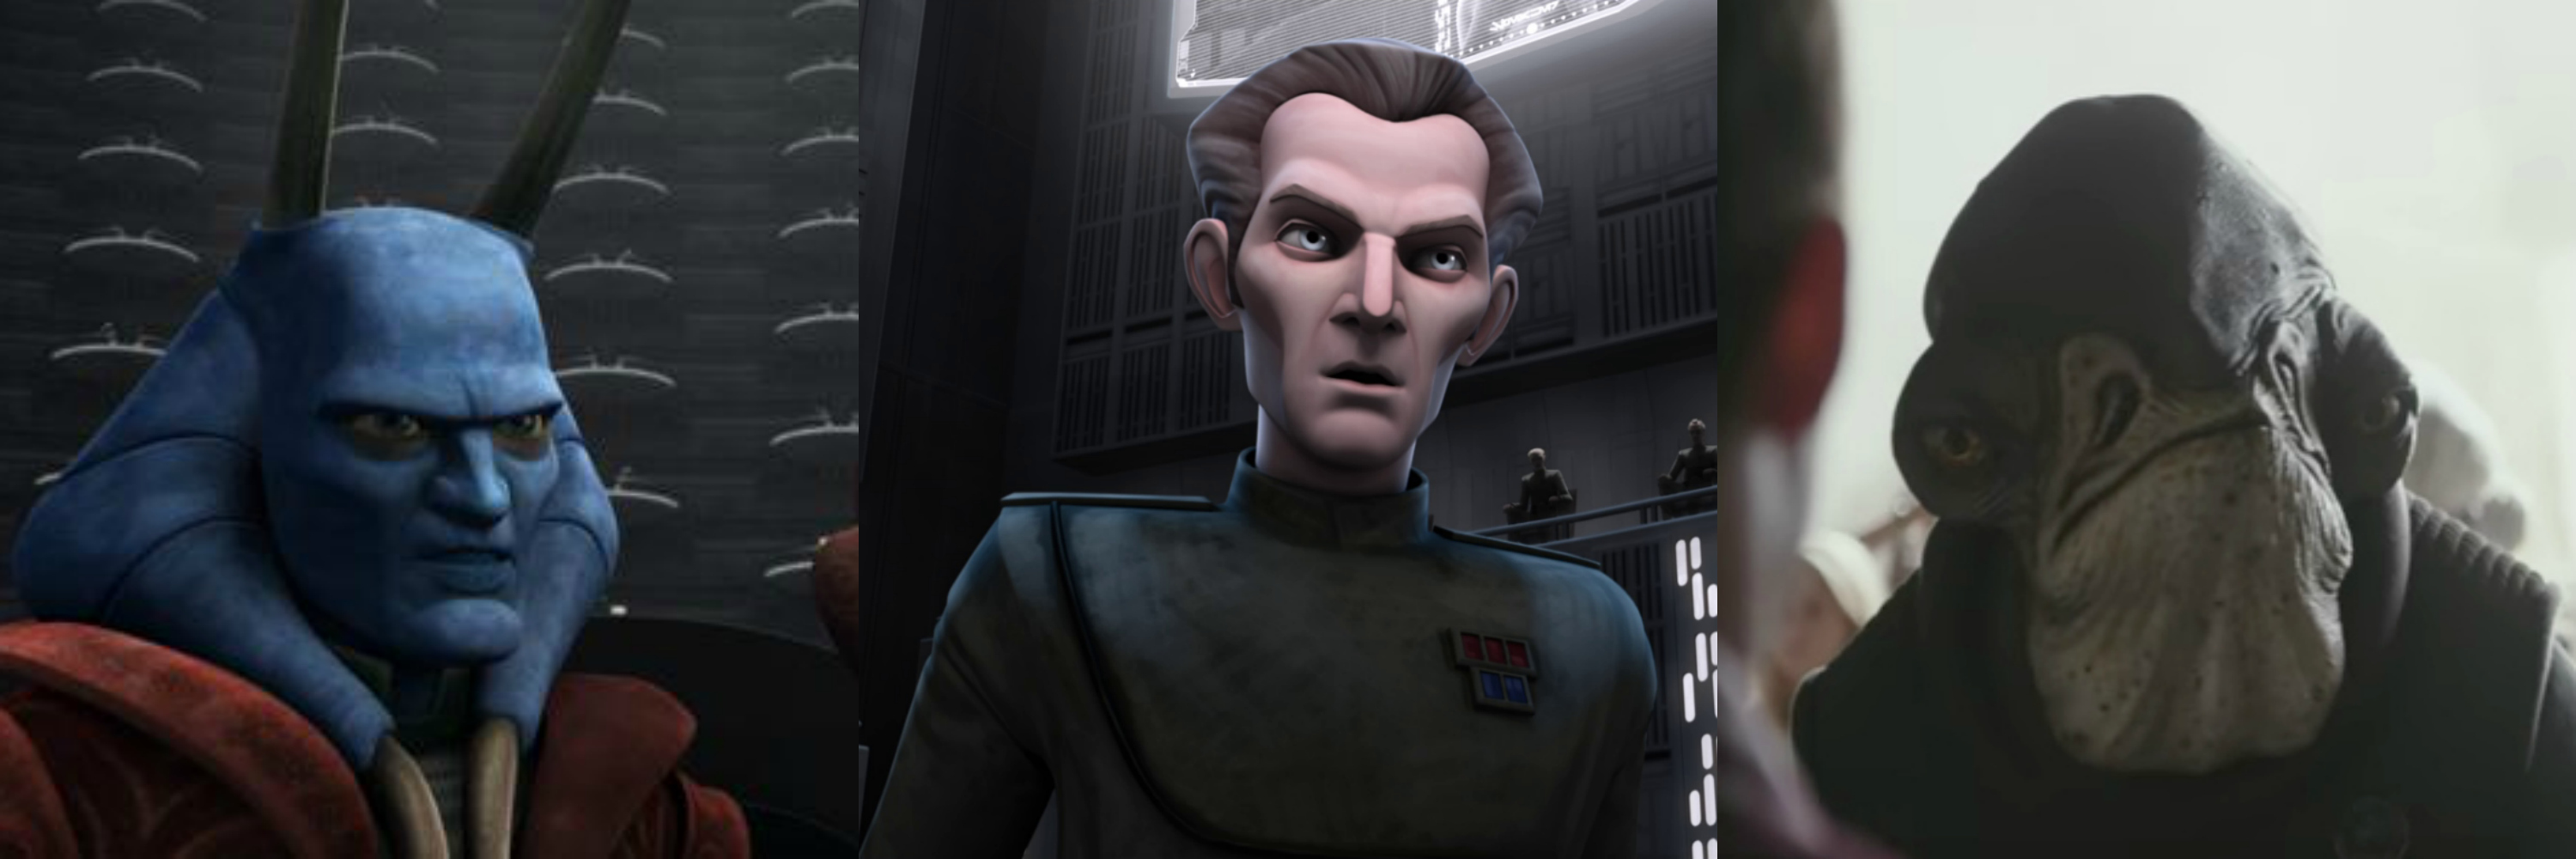 Stanton has voiced Mas Amedda on 'Star Wars: The Clone Wars' animated series as well as Admiral Wilhuff Tarkin in 'Clone Wars' and 'Rebels,' as well as Admiral Raduus in 'Rogue One.'